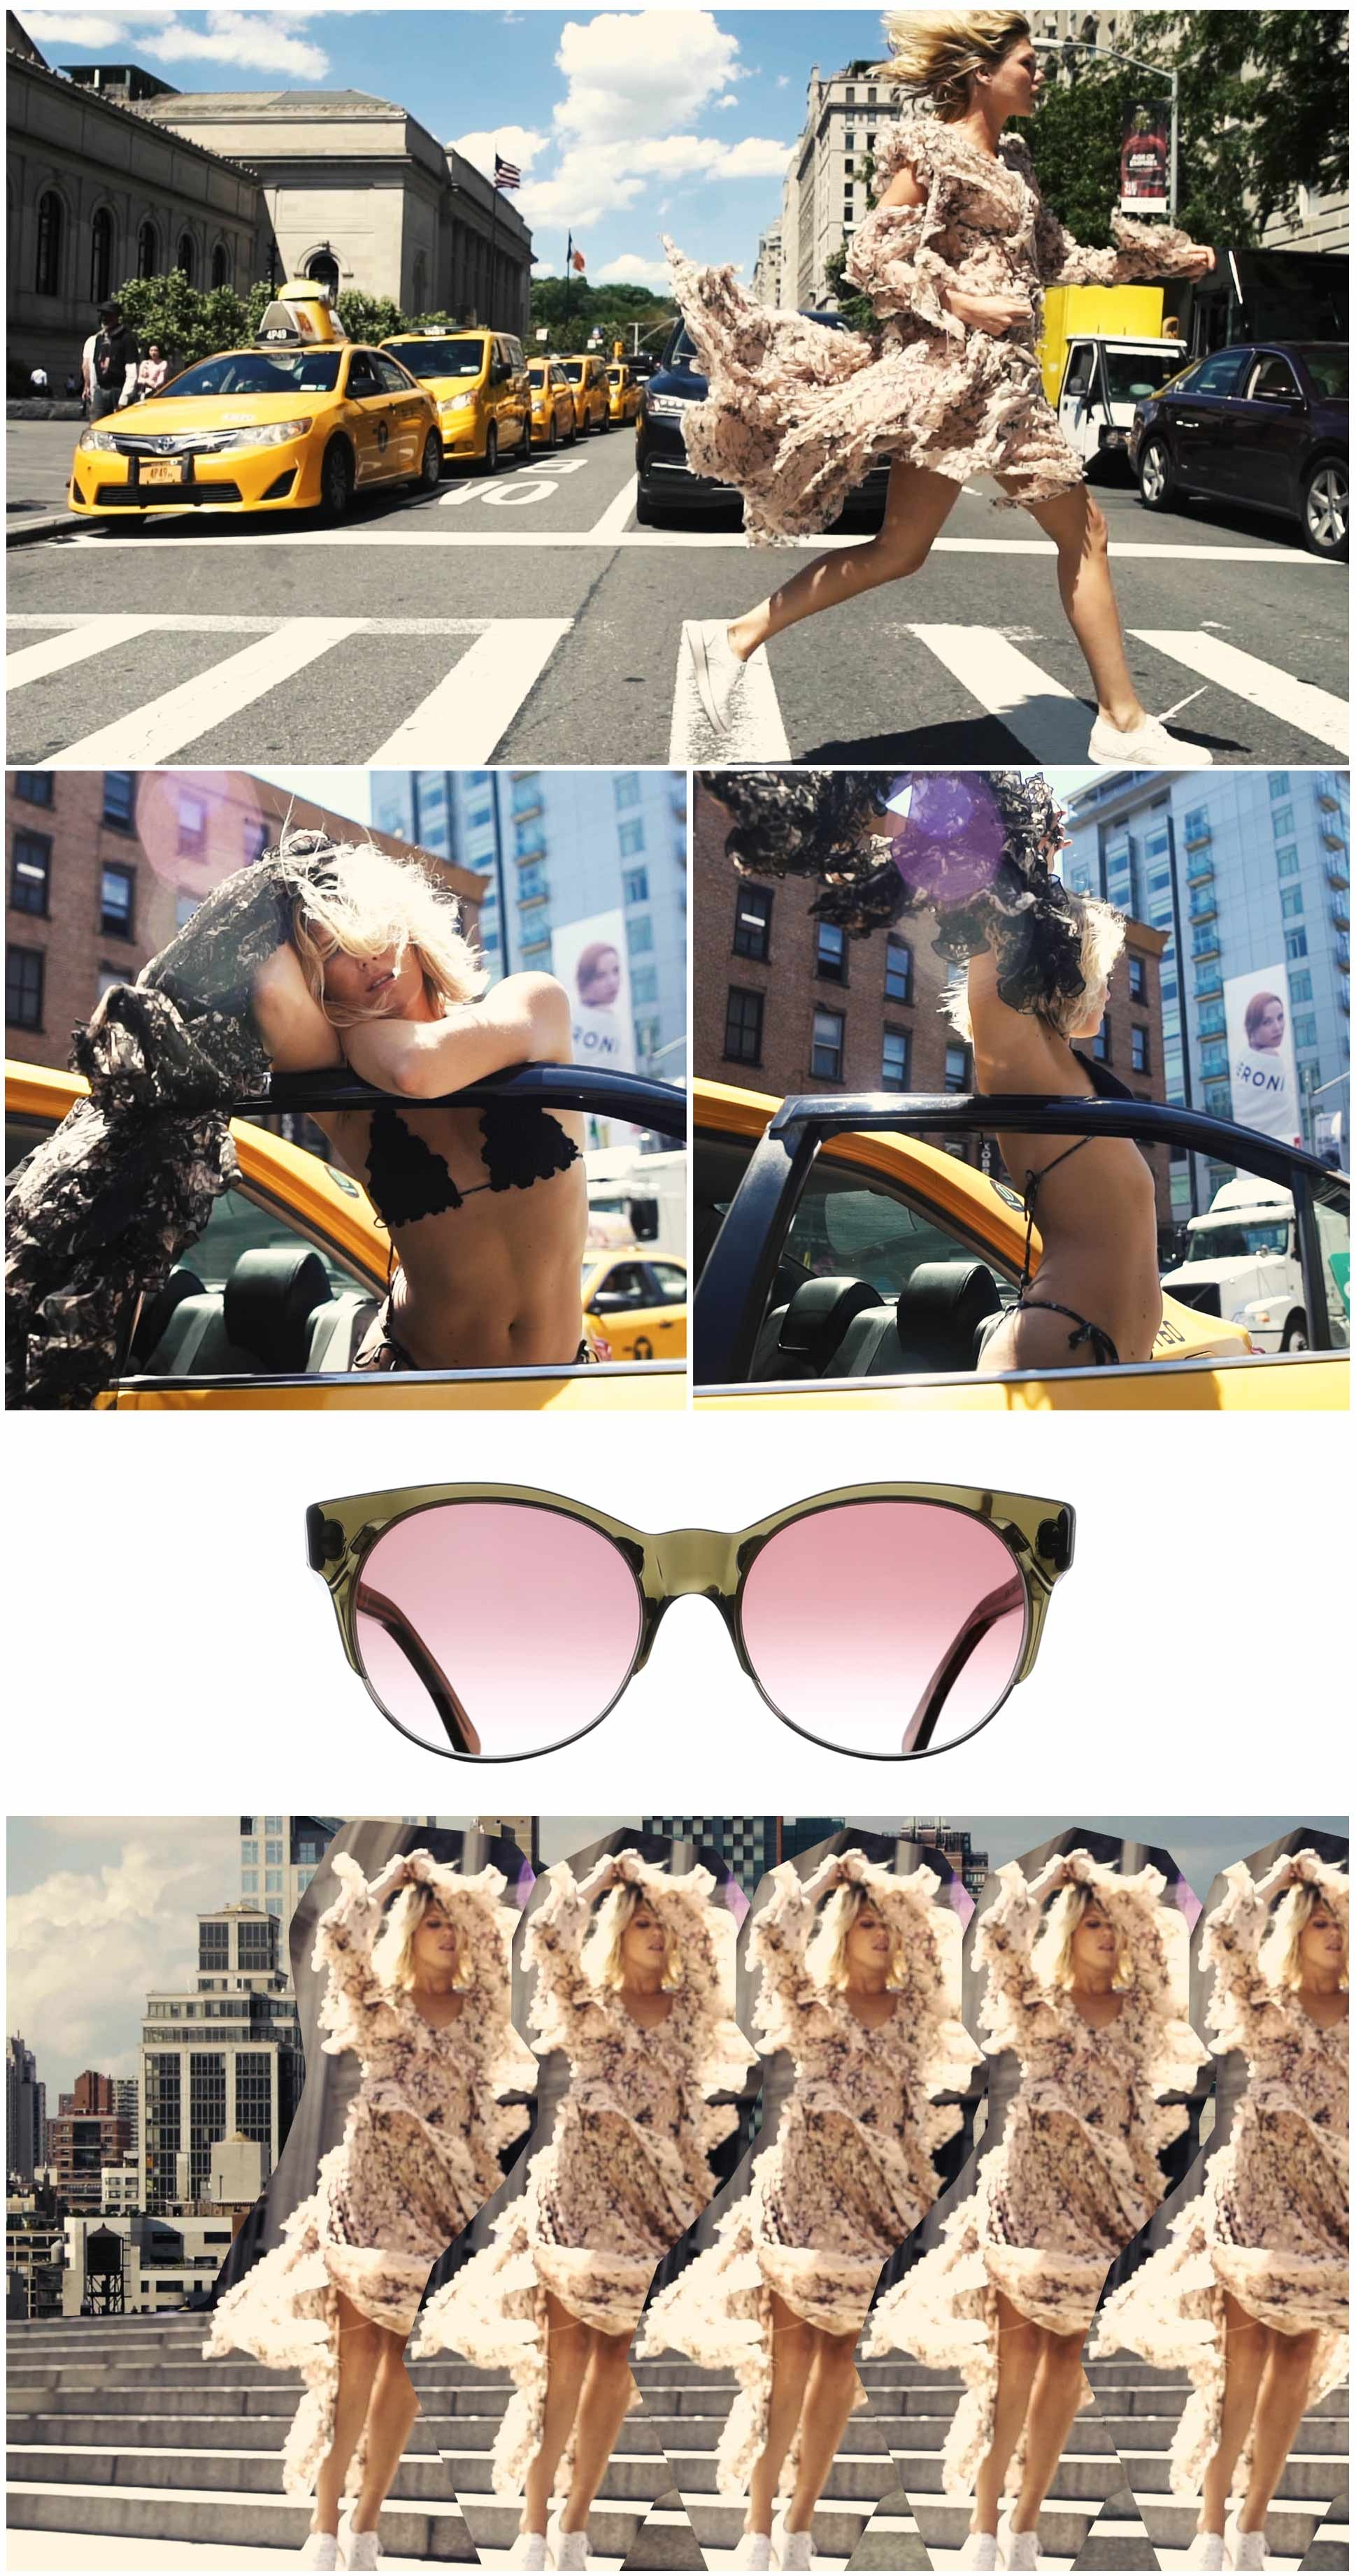 New York sunglasses campaign images